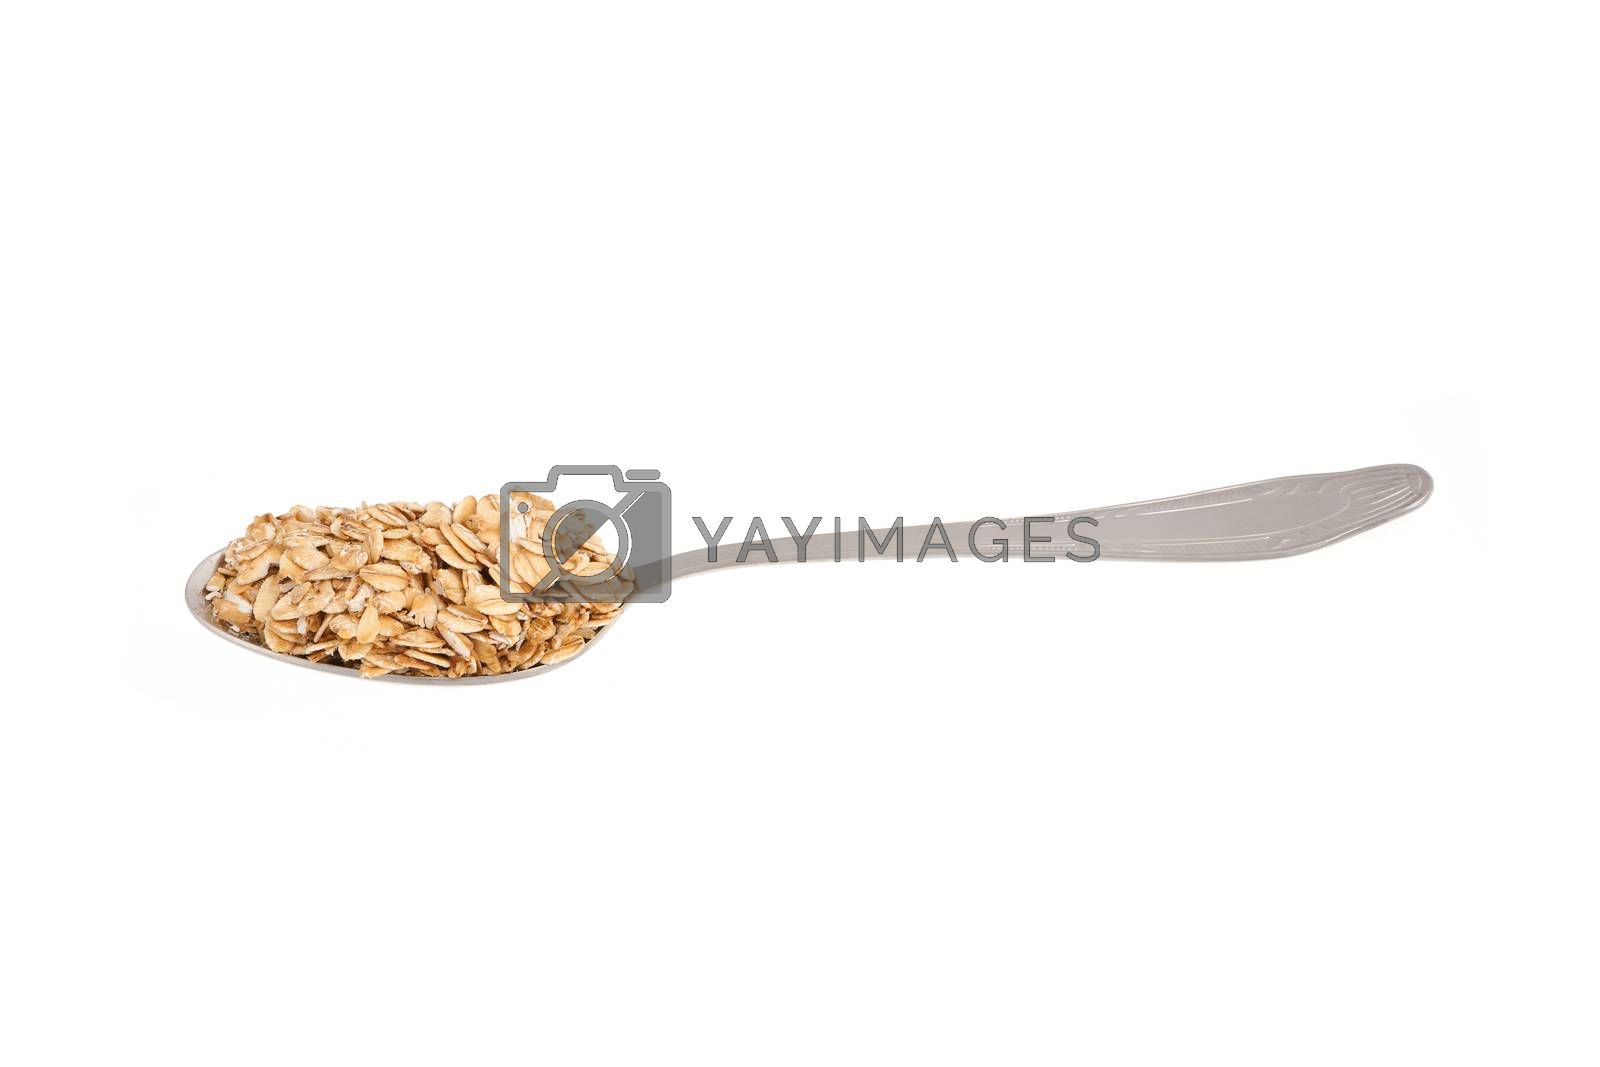 Oat flakes on metal spoon - isolated on a white background